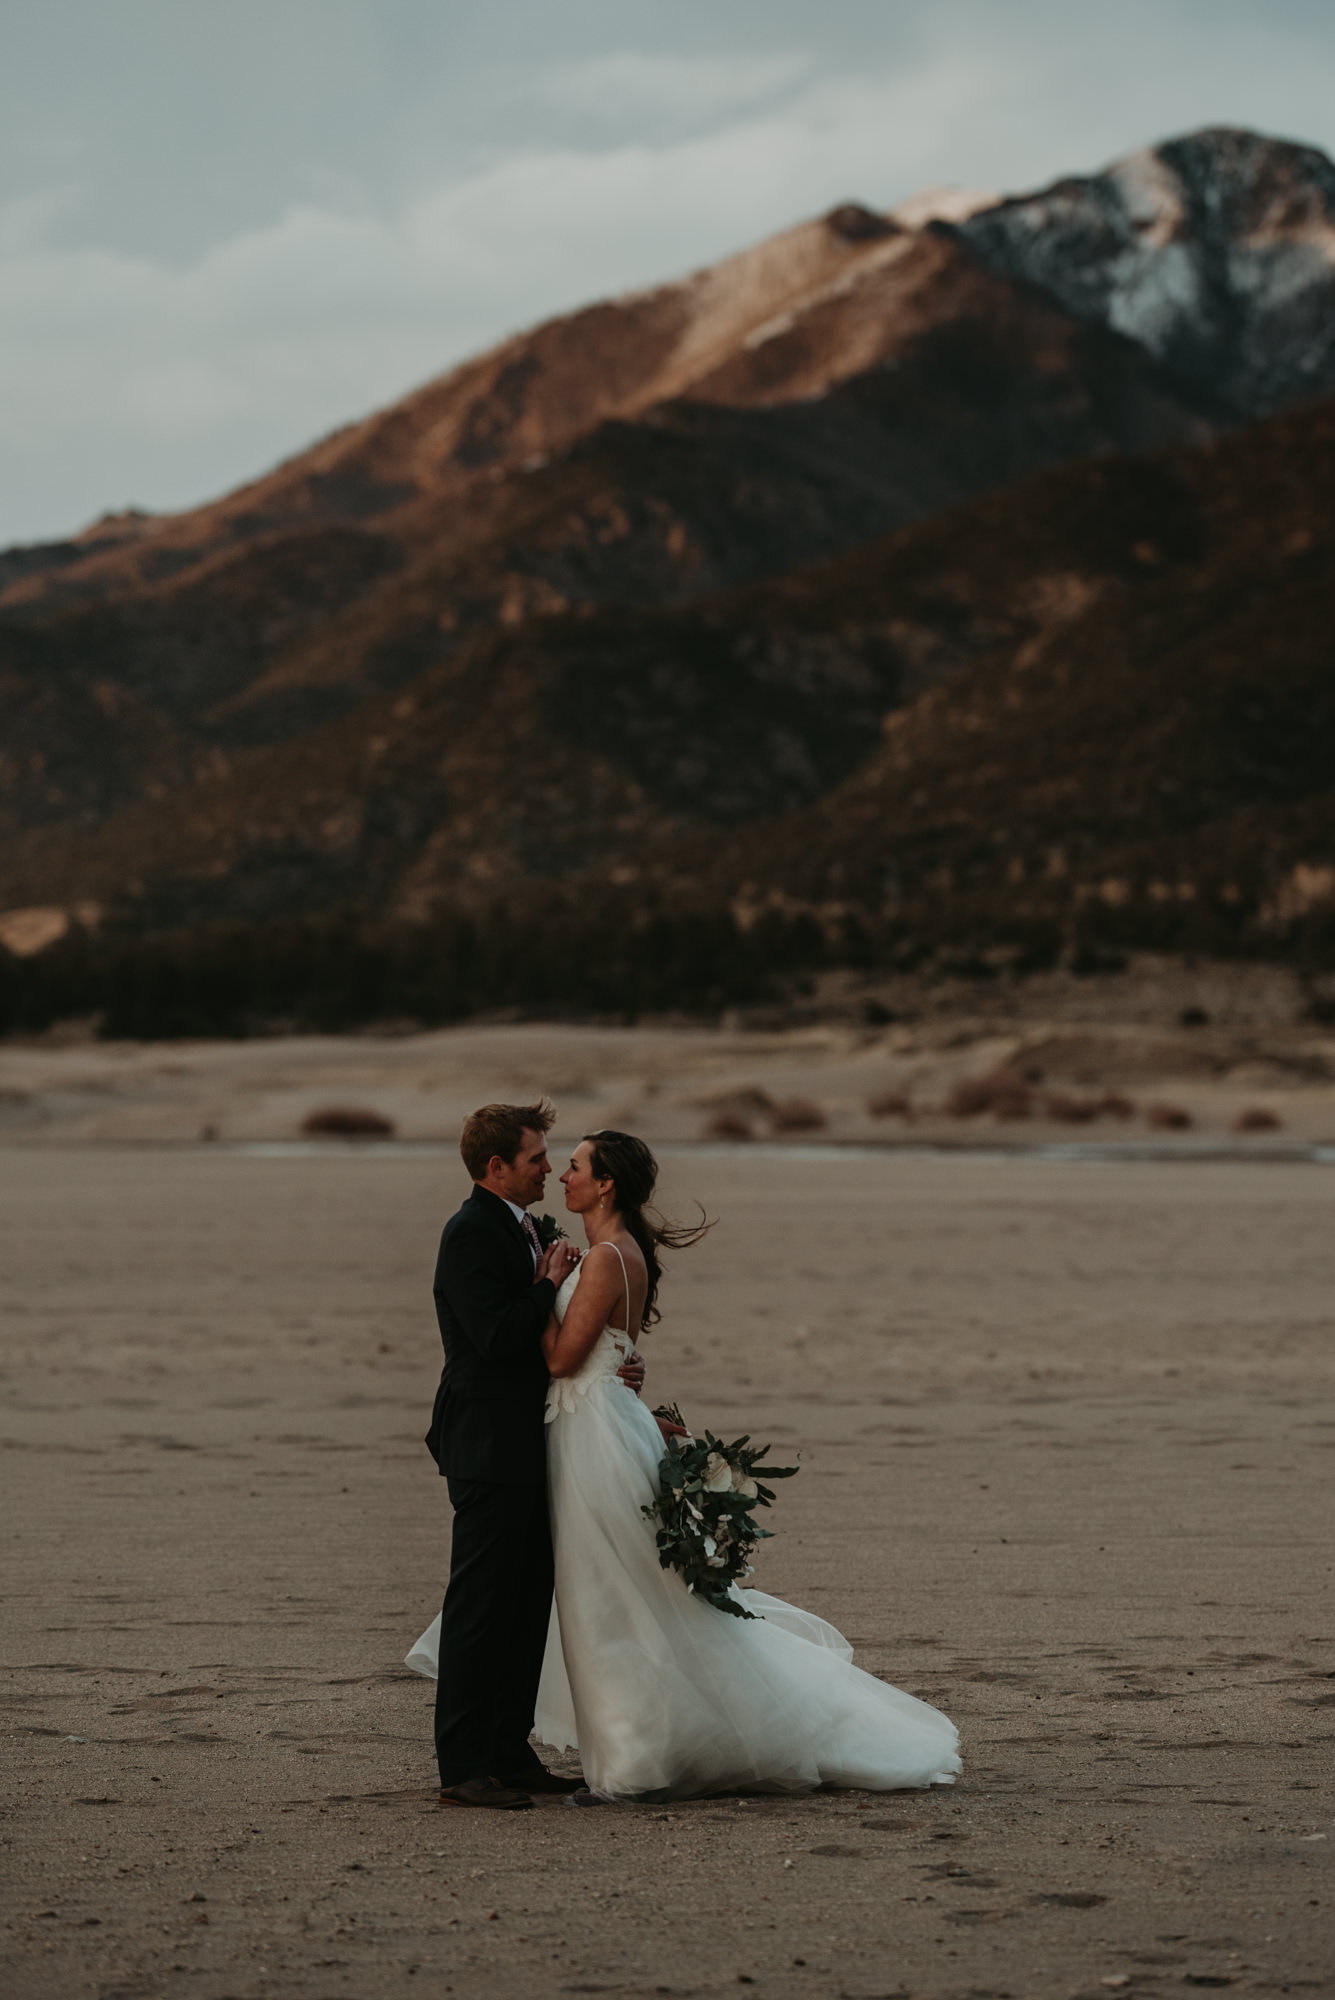 Colorado wedding locations.